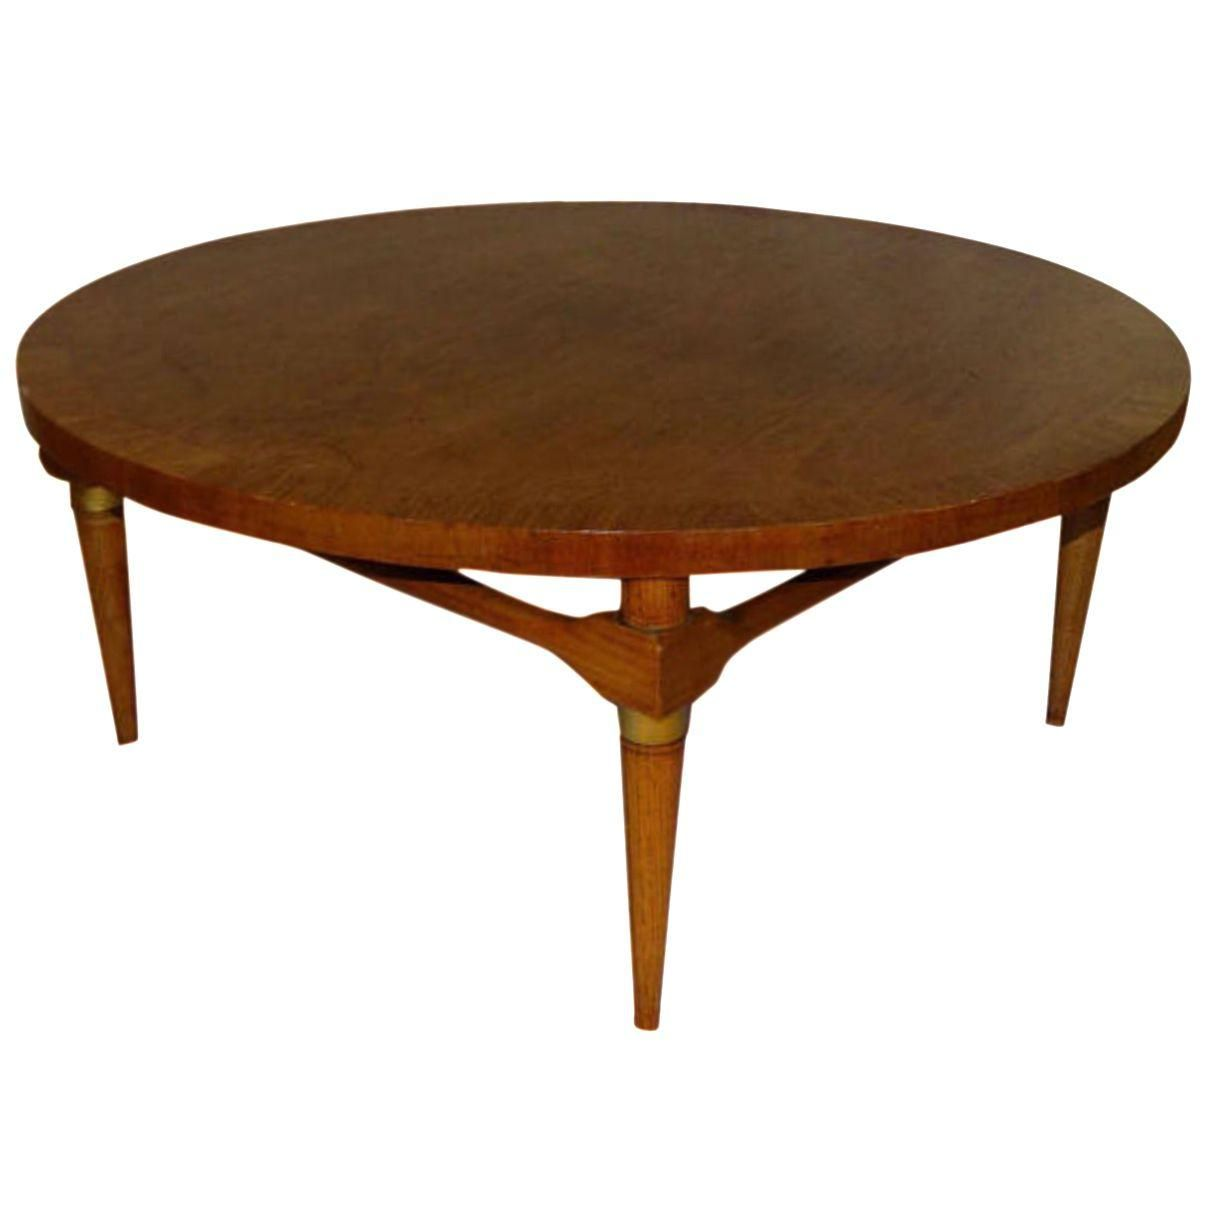 Mid Century Modern Round Coffee Table Image 1 Of 6 Coffee Table Coffee Table Inspiration Round Coffee Table Modern [ 1229 x 1229 Pixel ]